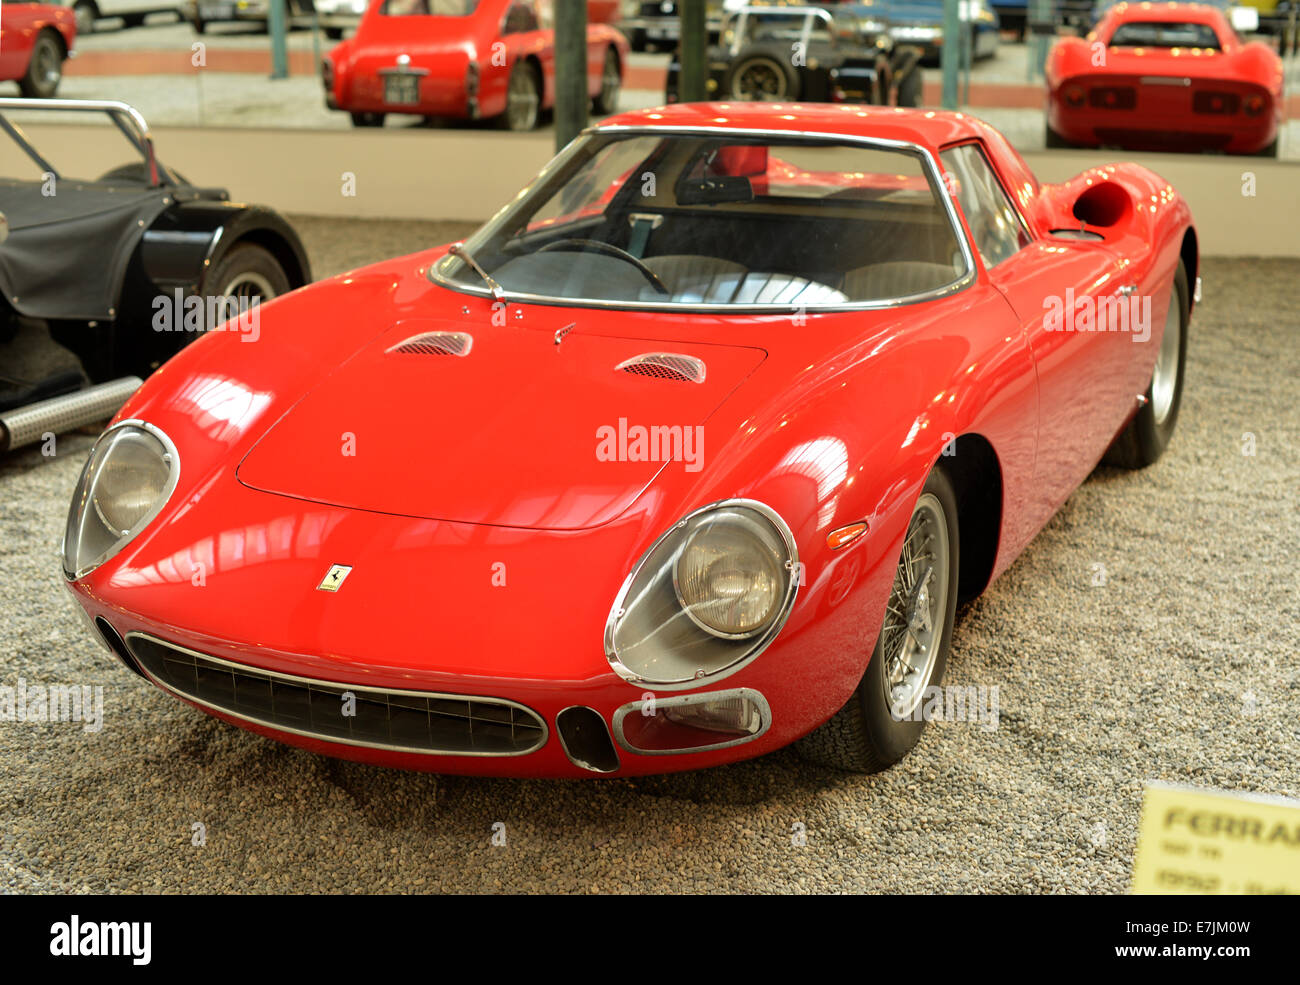 ferrari collection stock photos ferrari collection stock images alamy. Black Bedroom Furniture Sets. Home Design Ideas